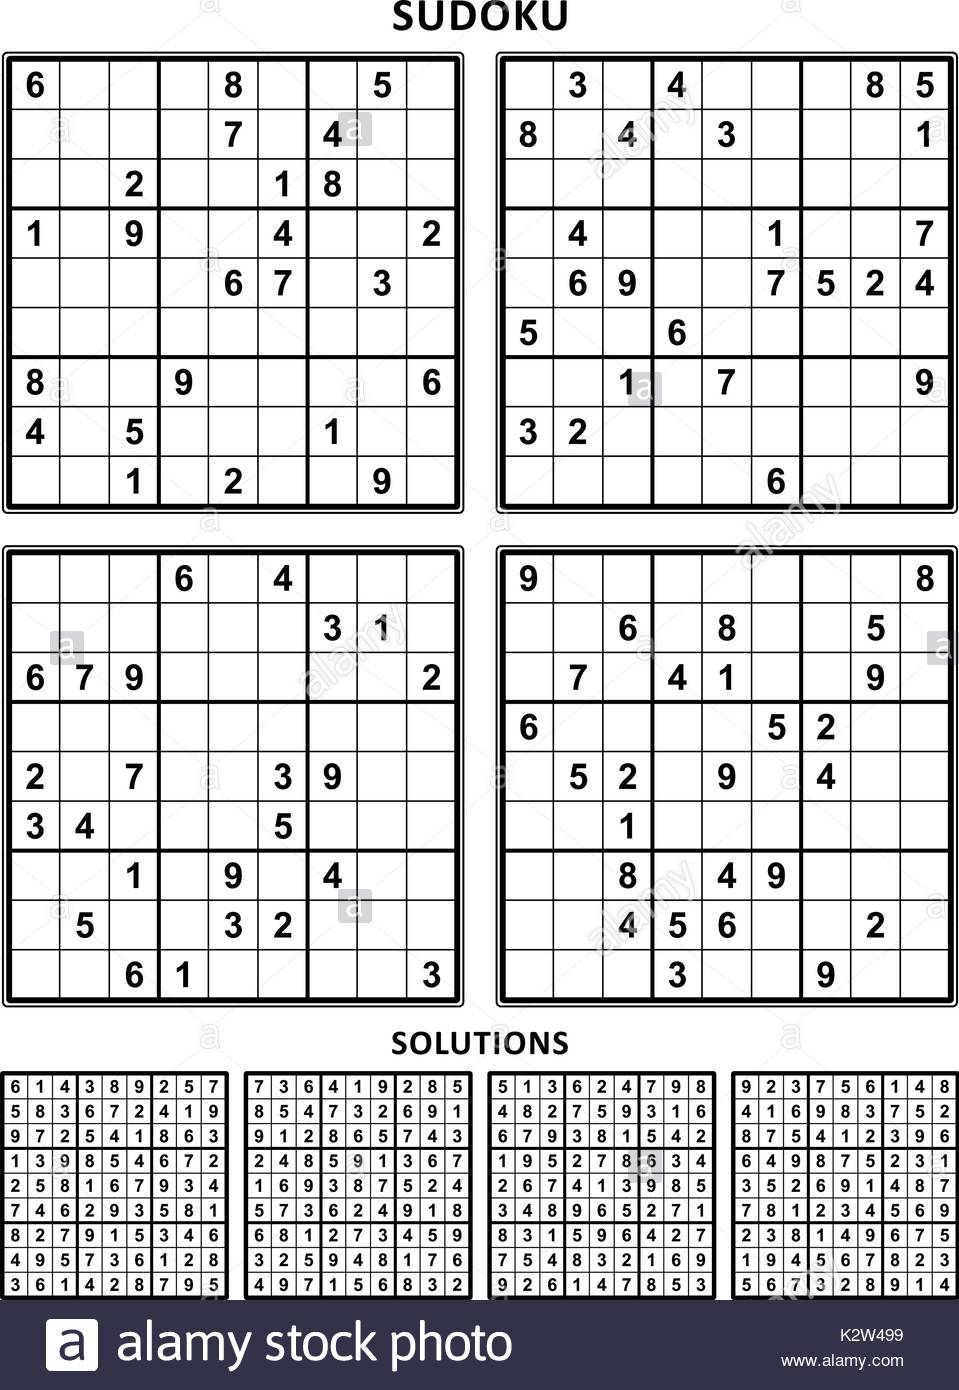 Four Sudoku Puzzles Of Comfortable (Easy, Yet Not Very Easy